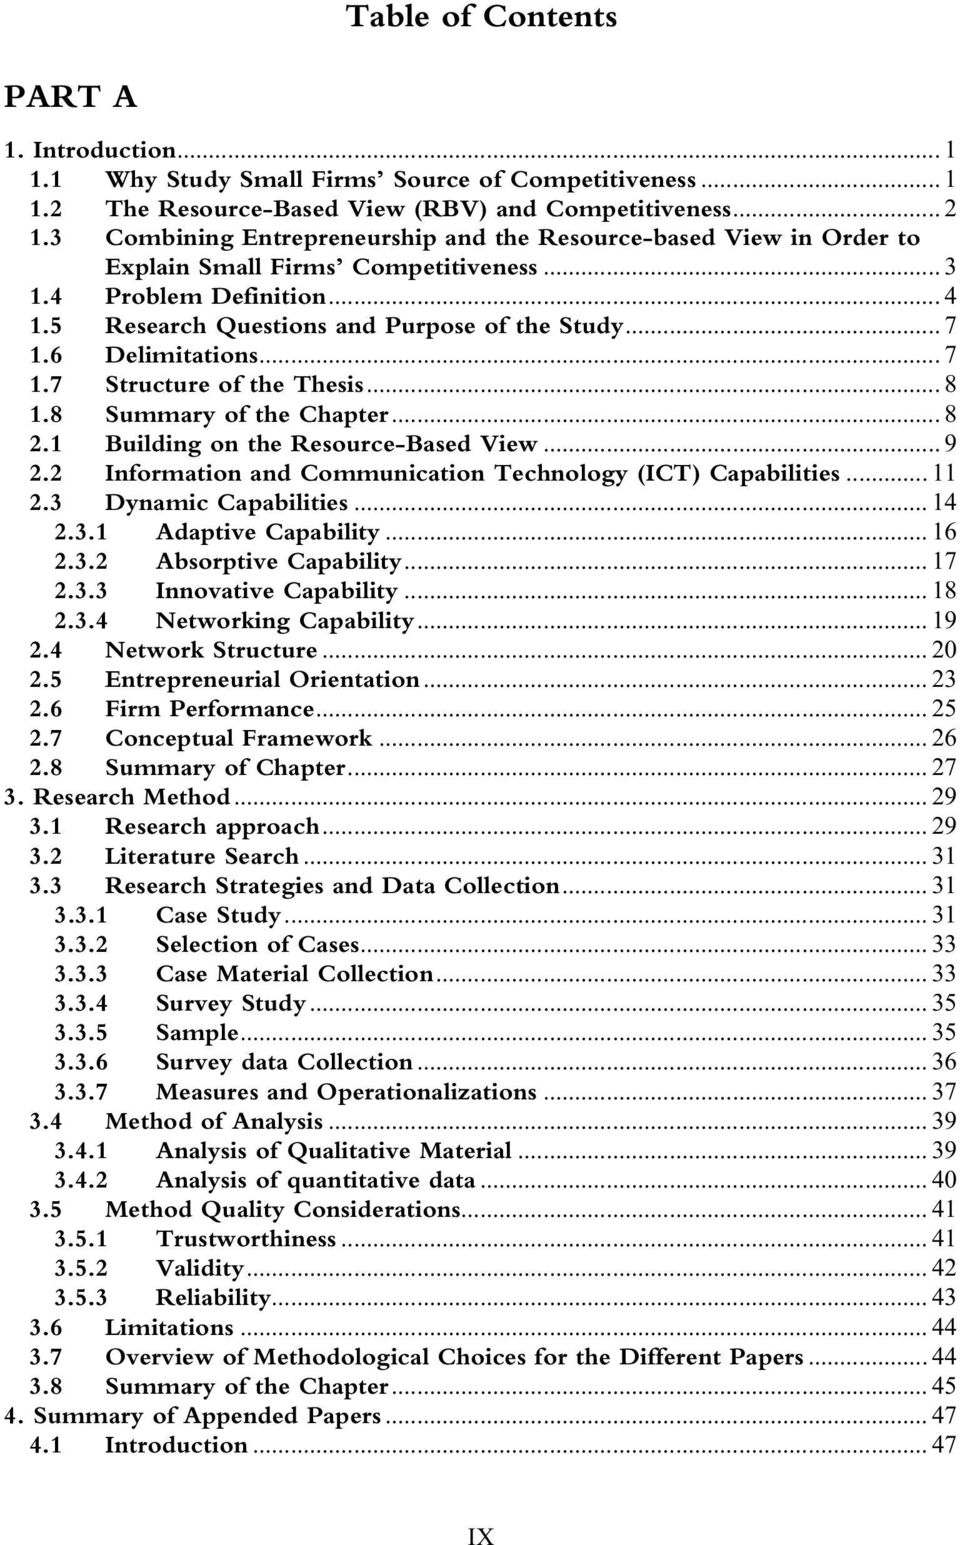 6 Delimitations... 7 1.7 Structure of the Thesis... 8 1.8 Summary of the Chapter... 8 2.1 Building on the Resource-Based View... 9 2.2 Information and Communication Technology (ICT) Capabilities.